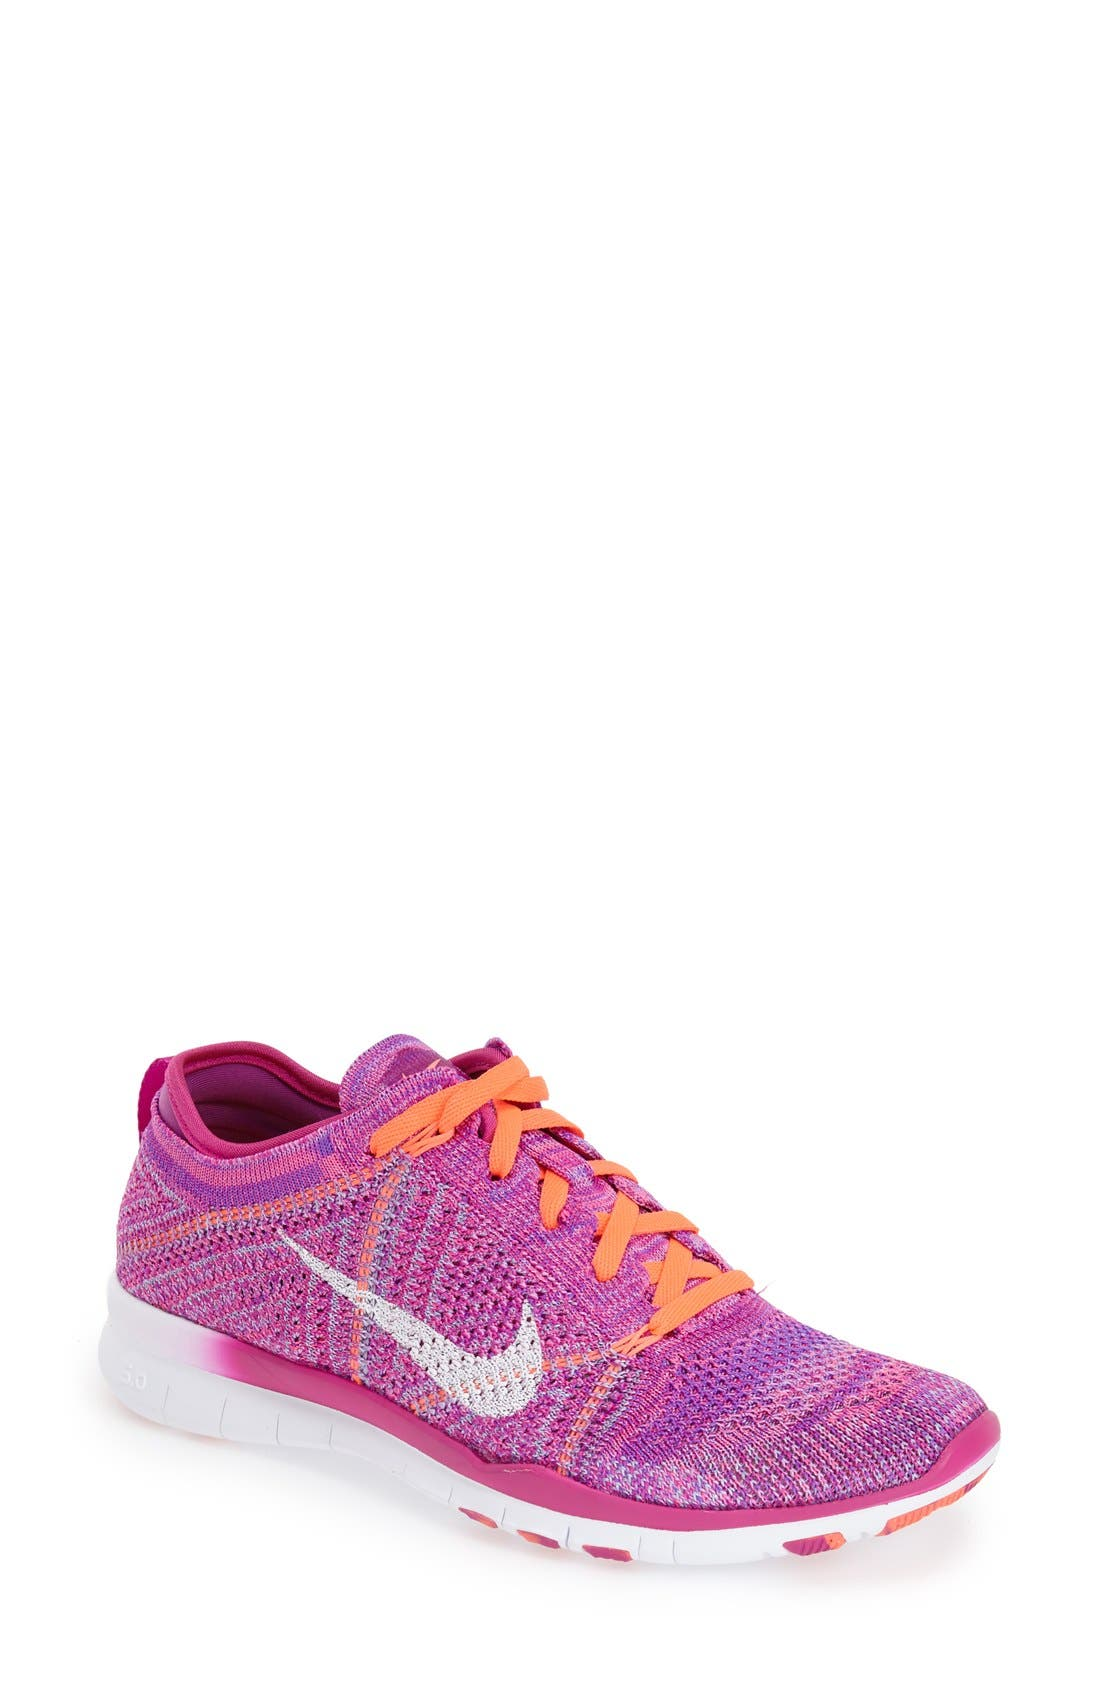 'Free Flyknit 5.0 TR' Training Shoe,                             Main thumbnail 11, color,